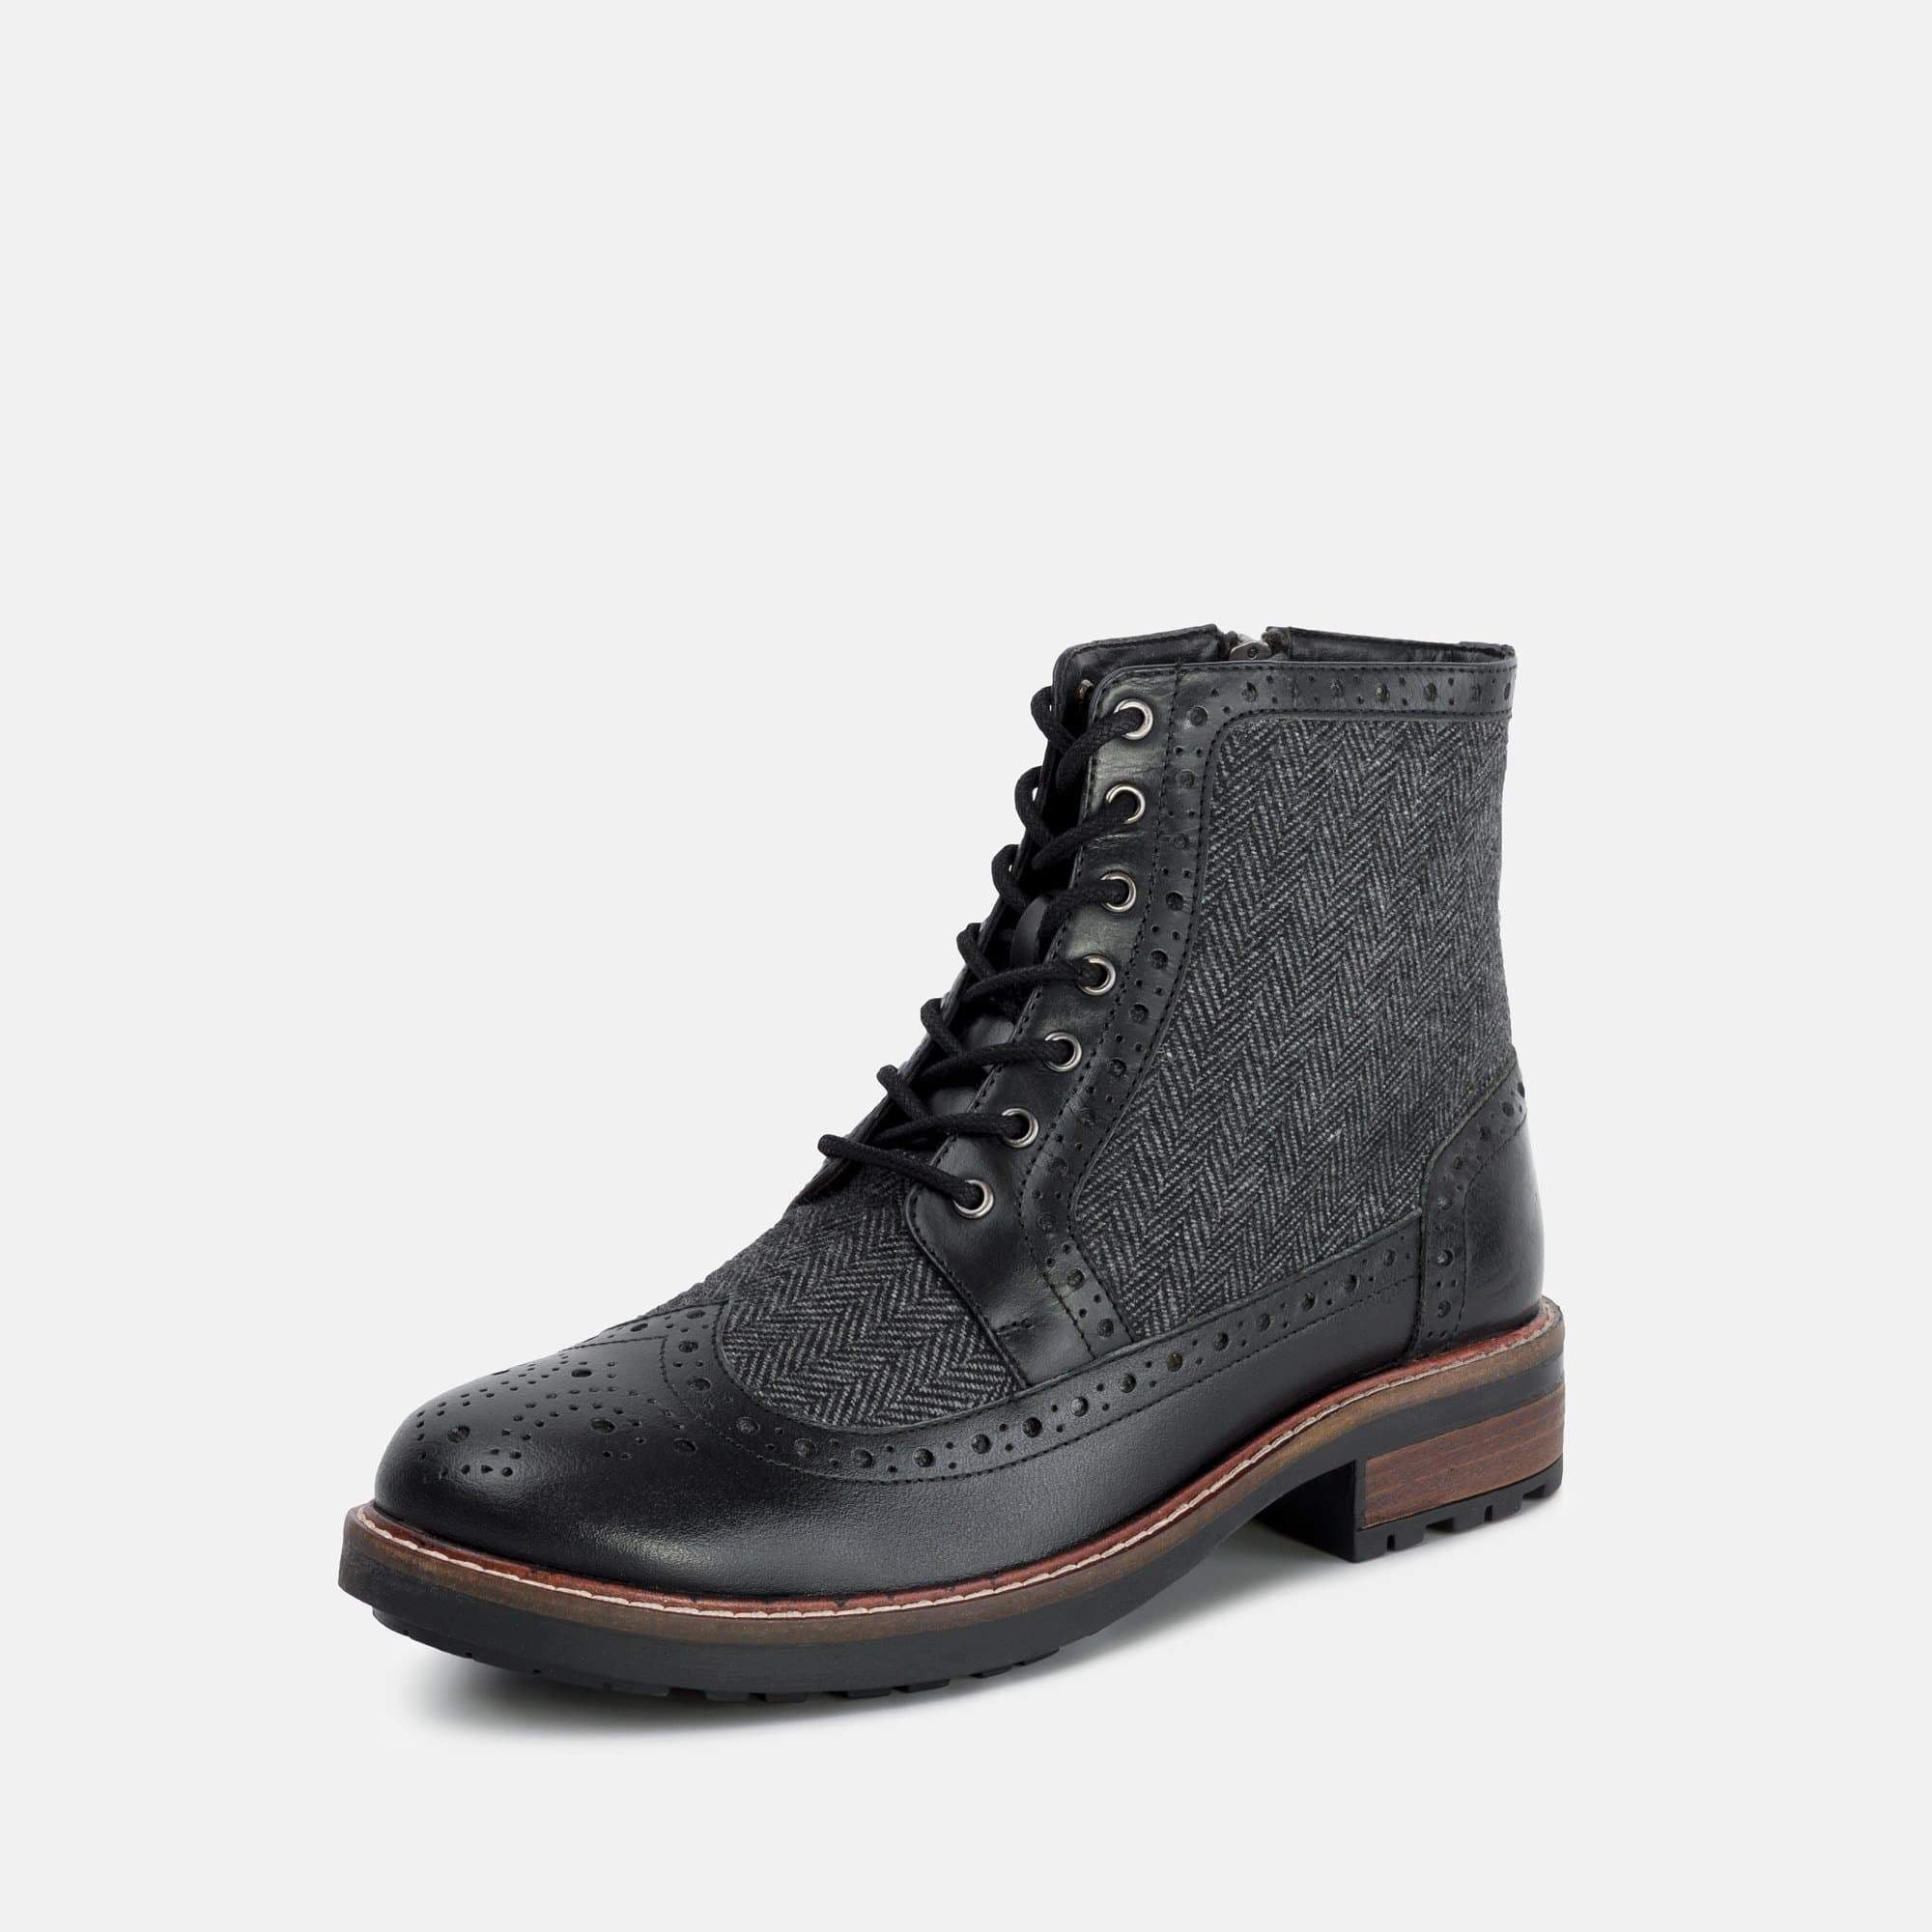 Redfoot Footwear MENS REDFOOT GRAY BLACK LEATHER TWILL BOOT